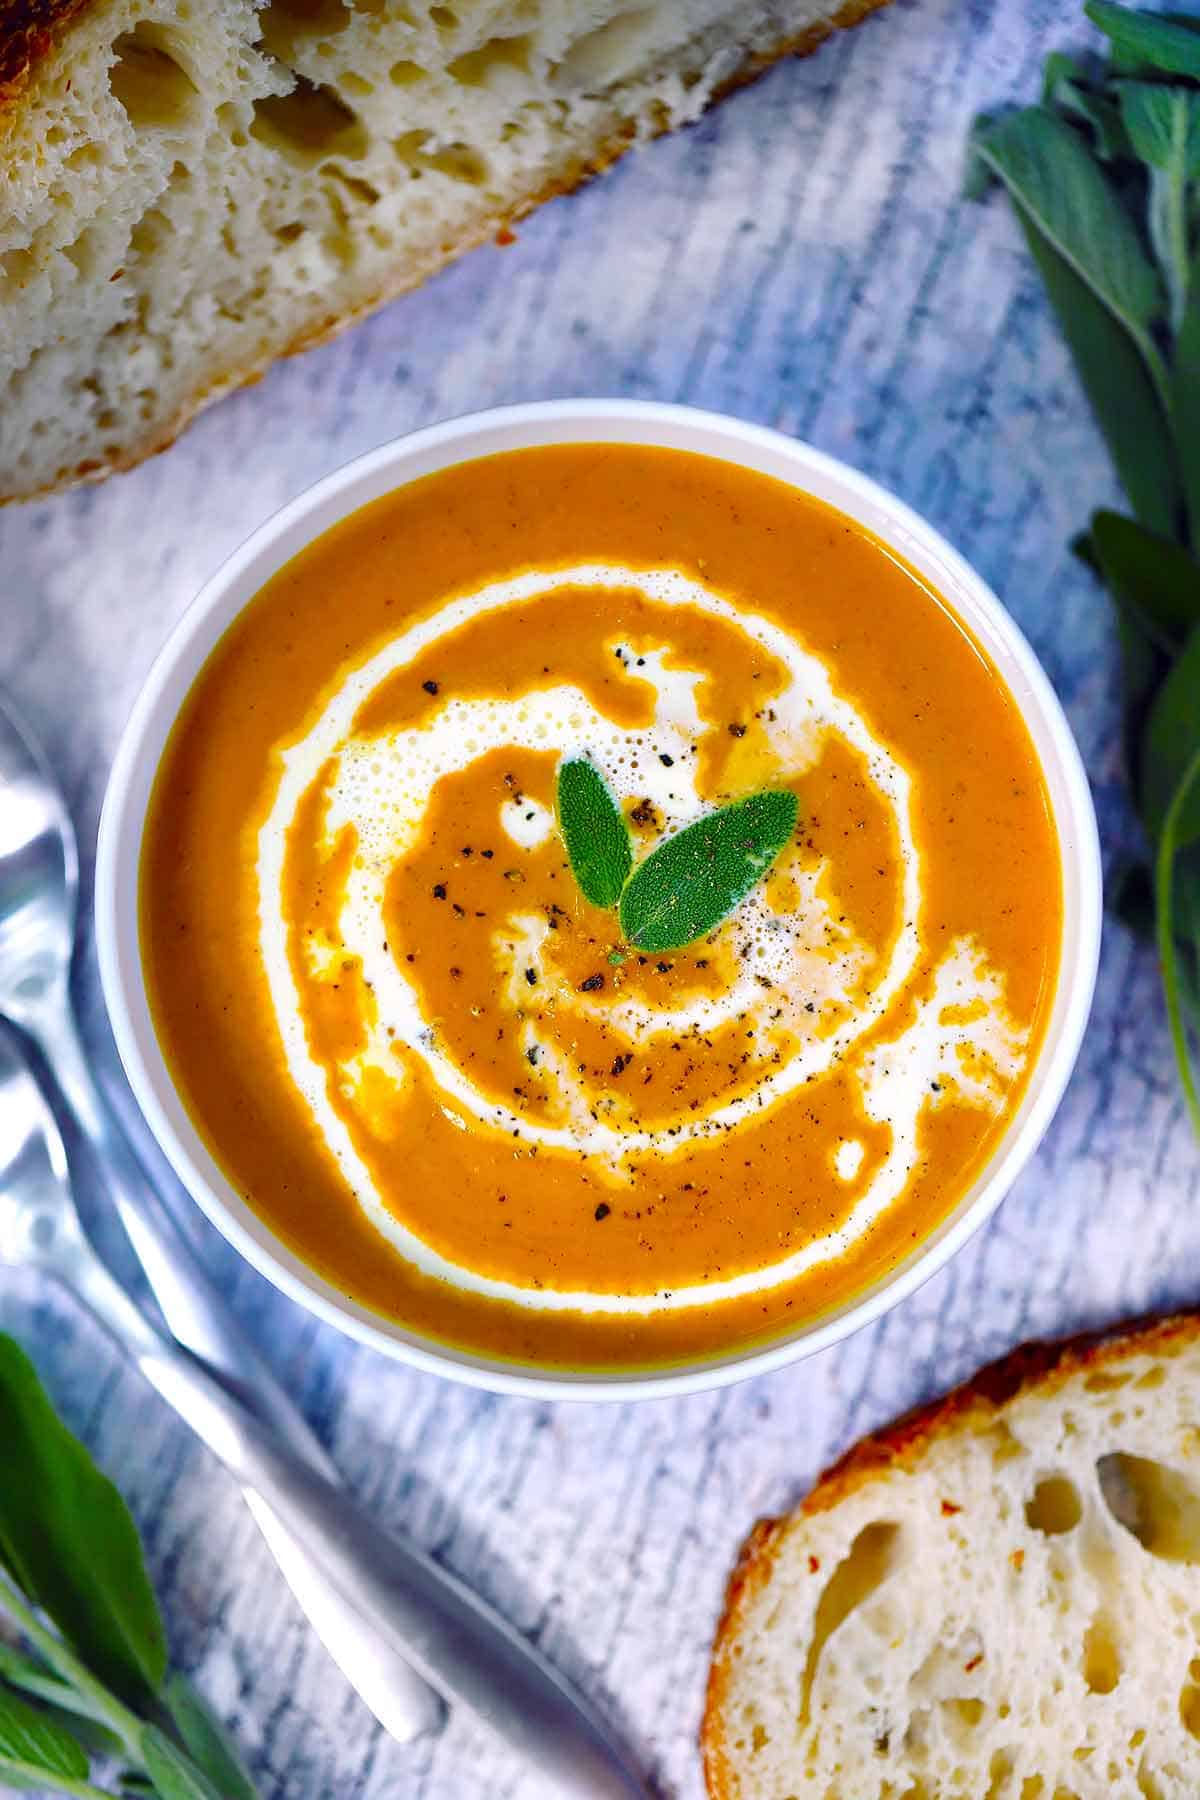 Overhead photo of a bowl of pumpkin soup drizzled with cream and garnished with fresh sage leaves, with bread around it.